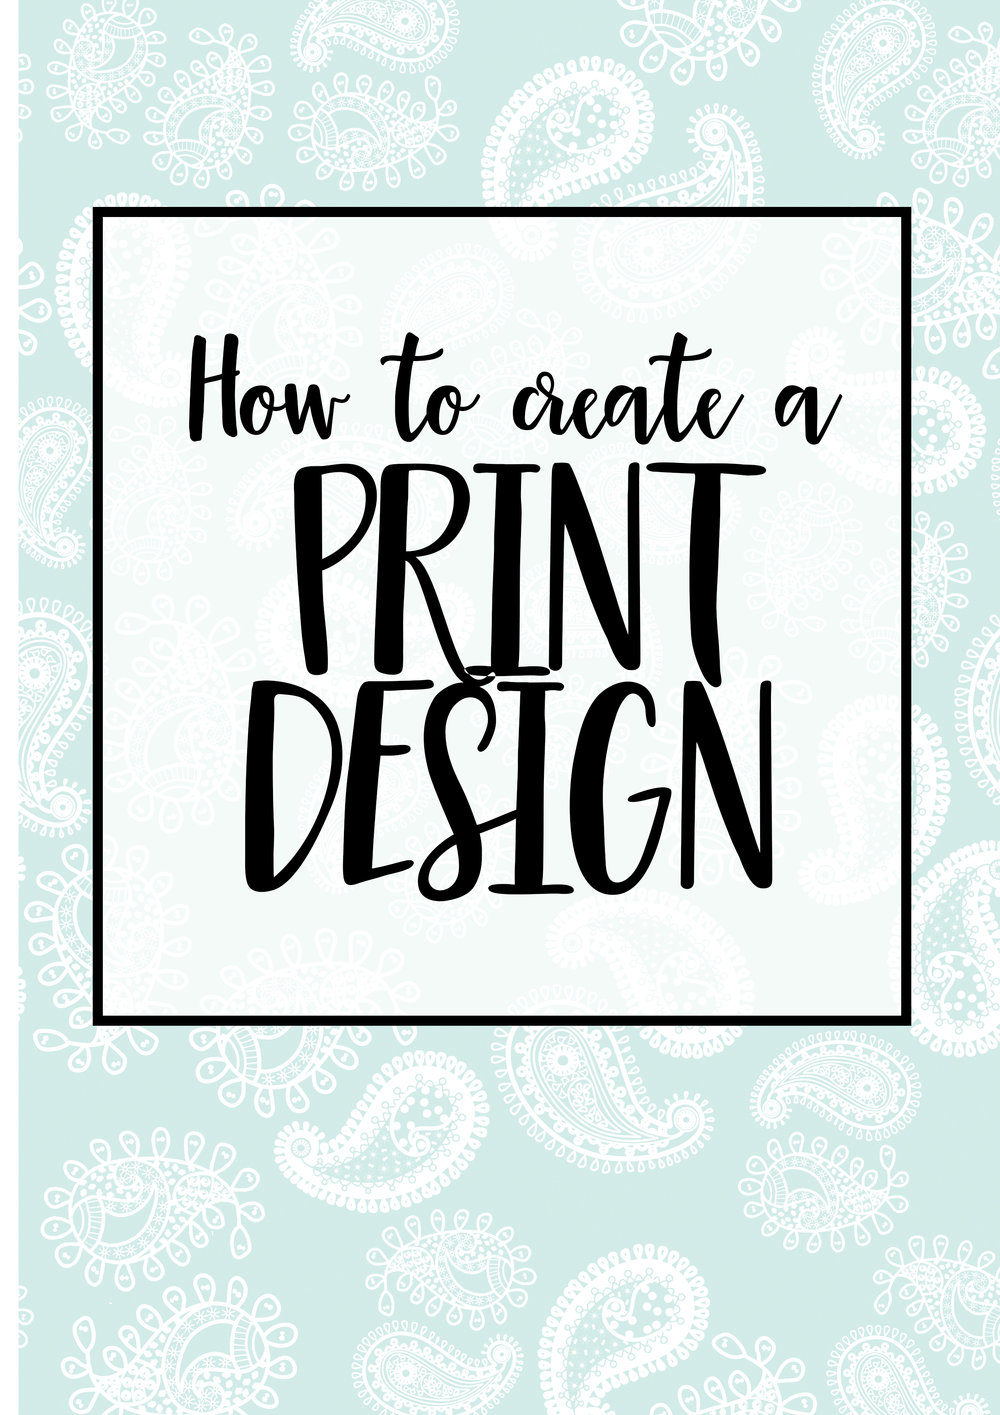 How to create a print design